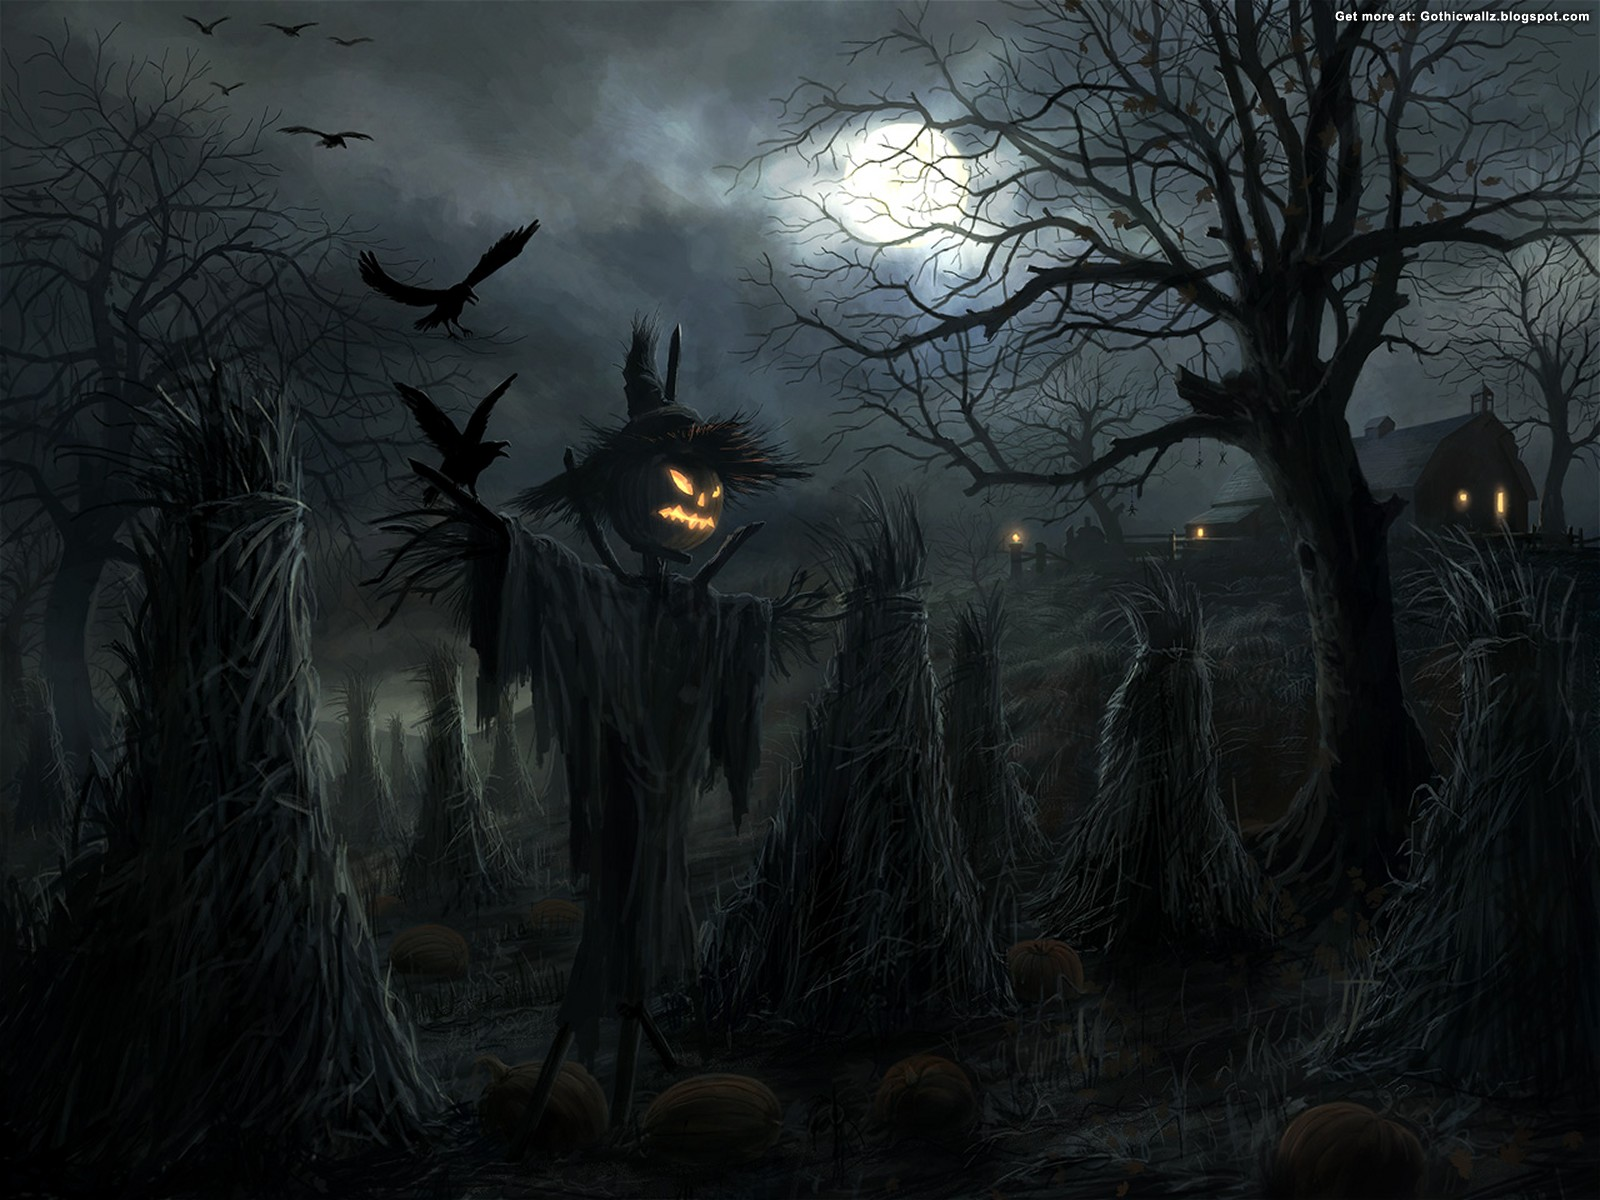 Halloween Graveyard | Gothic Wallpaper Download